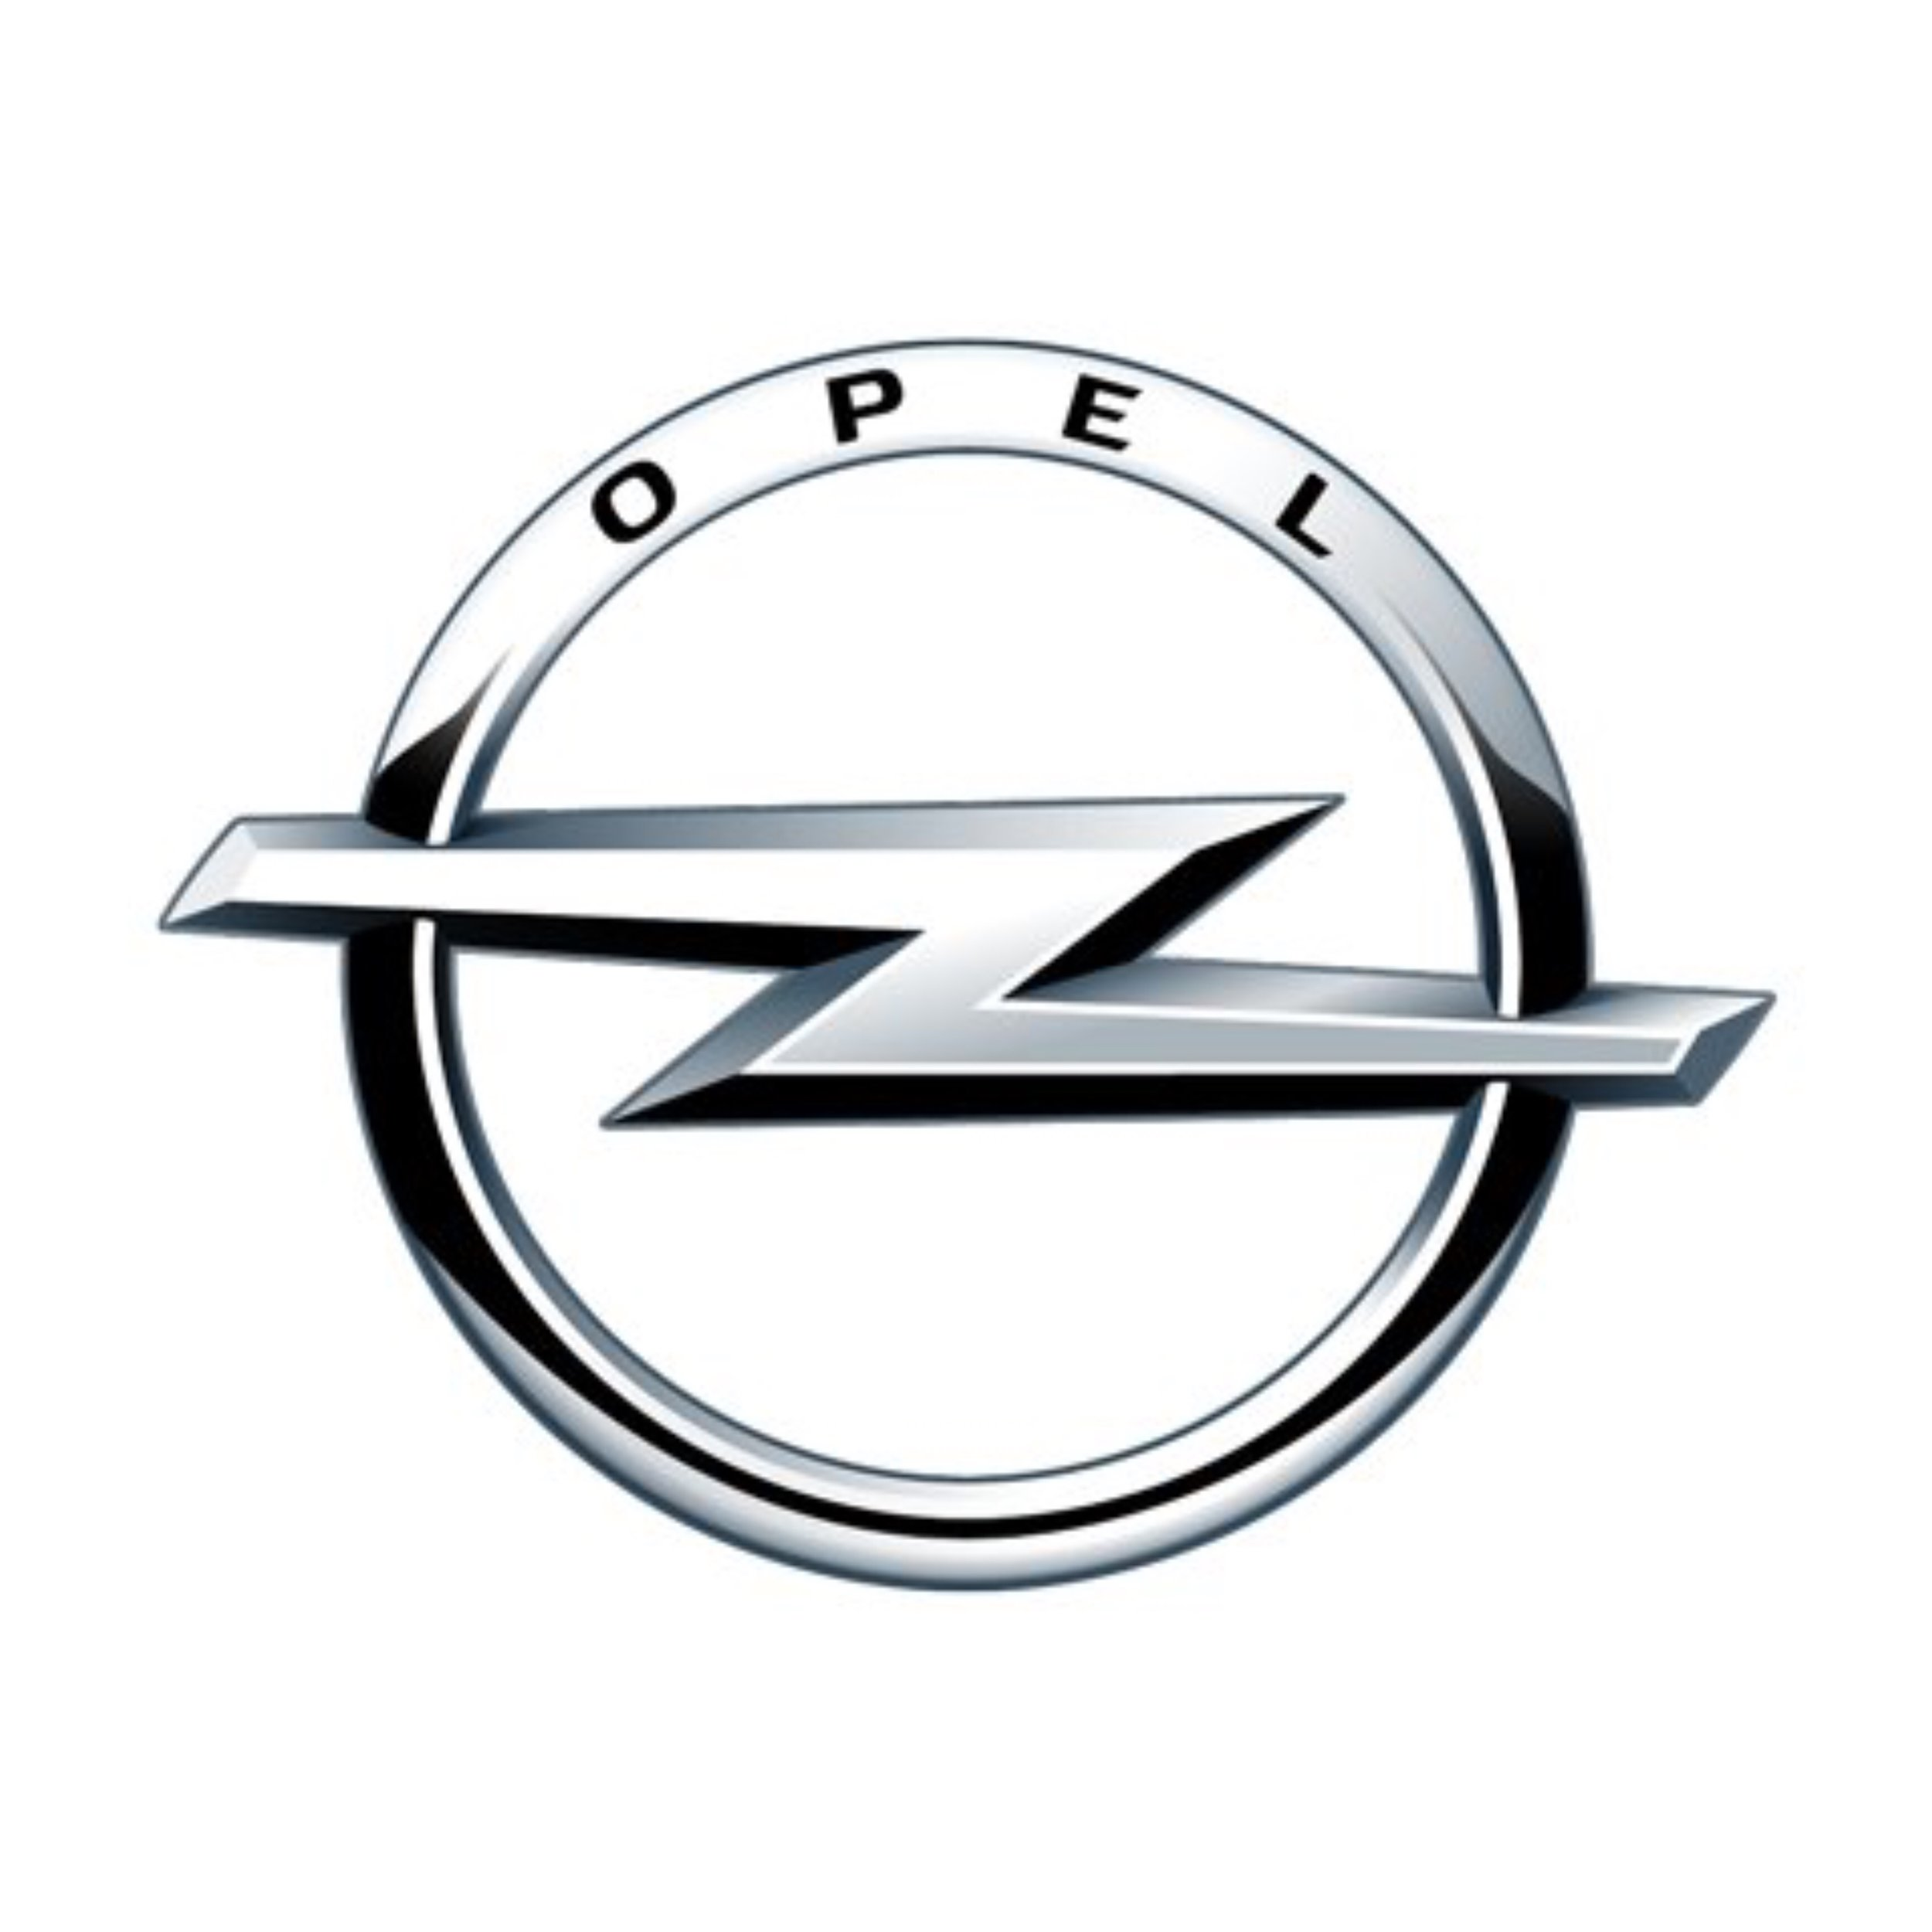 Opel - Anzahl Angebote: 1